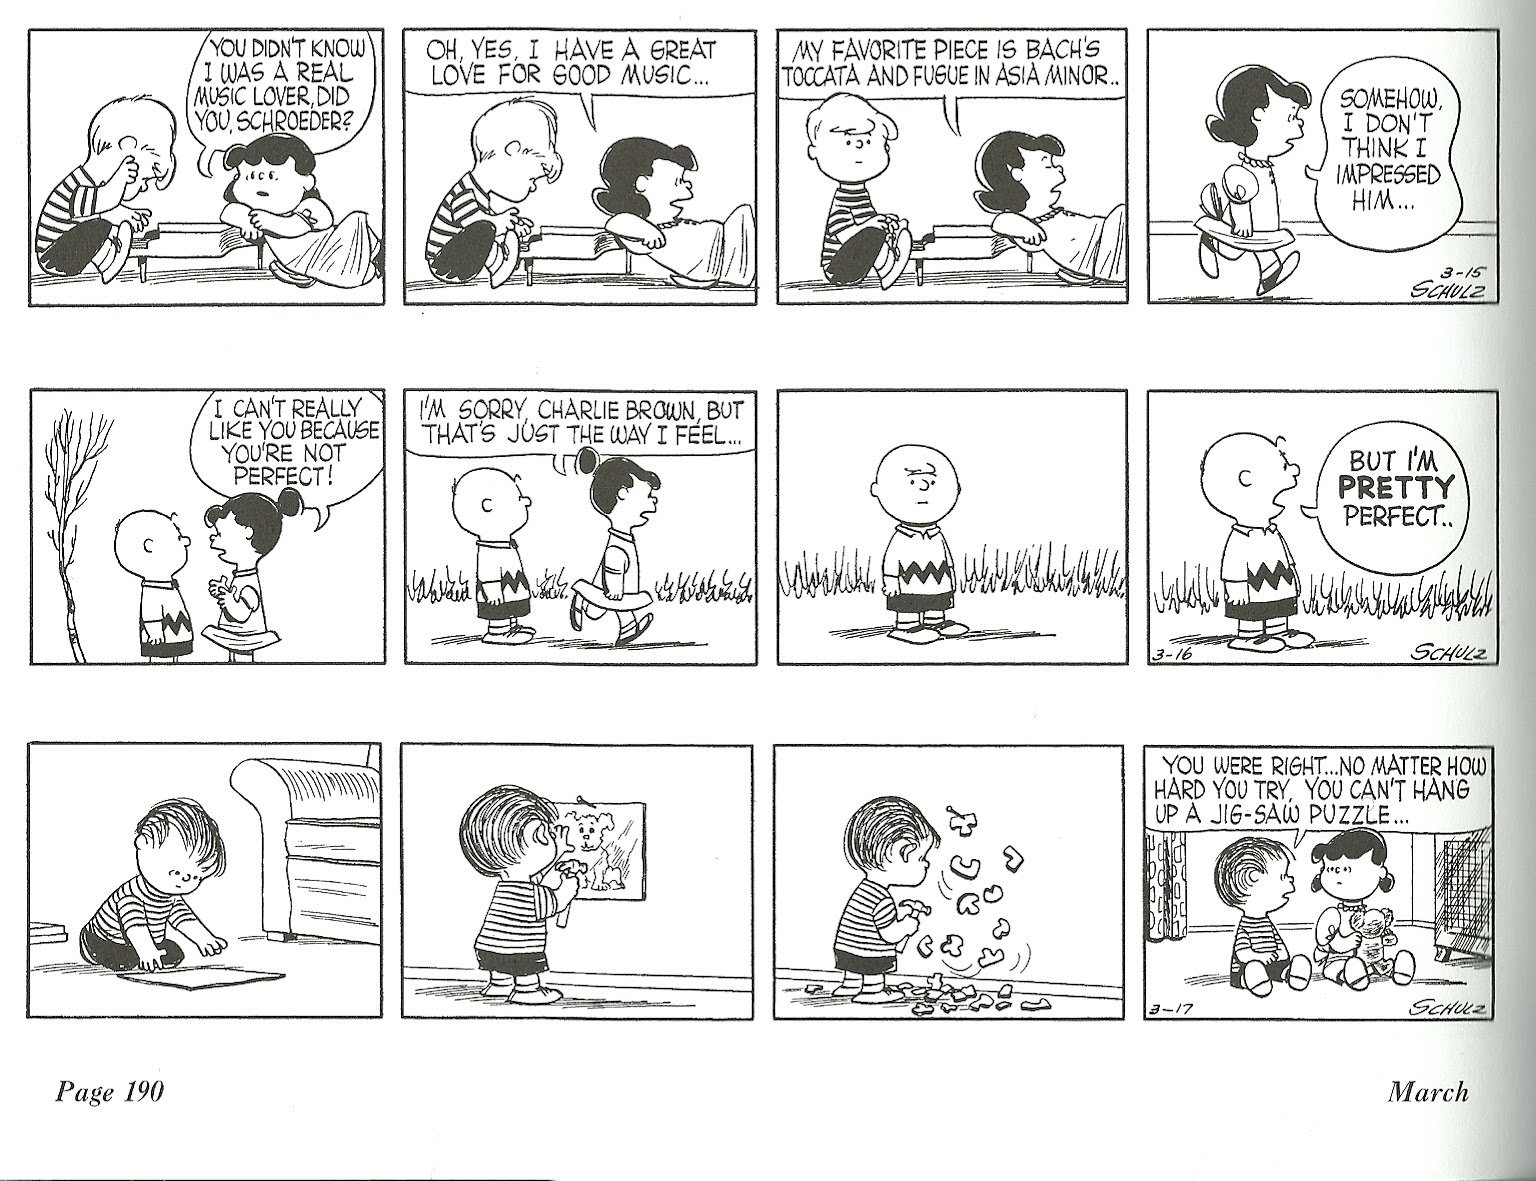 New Readers Art Here The Complete Peanuts Series